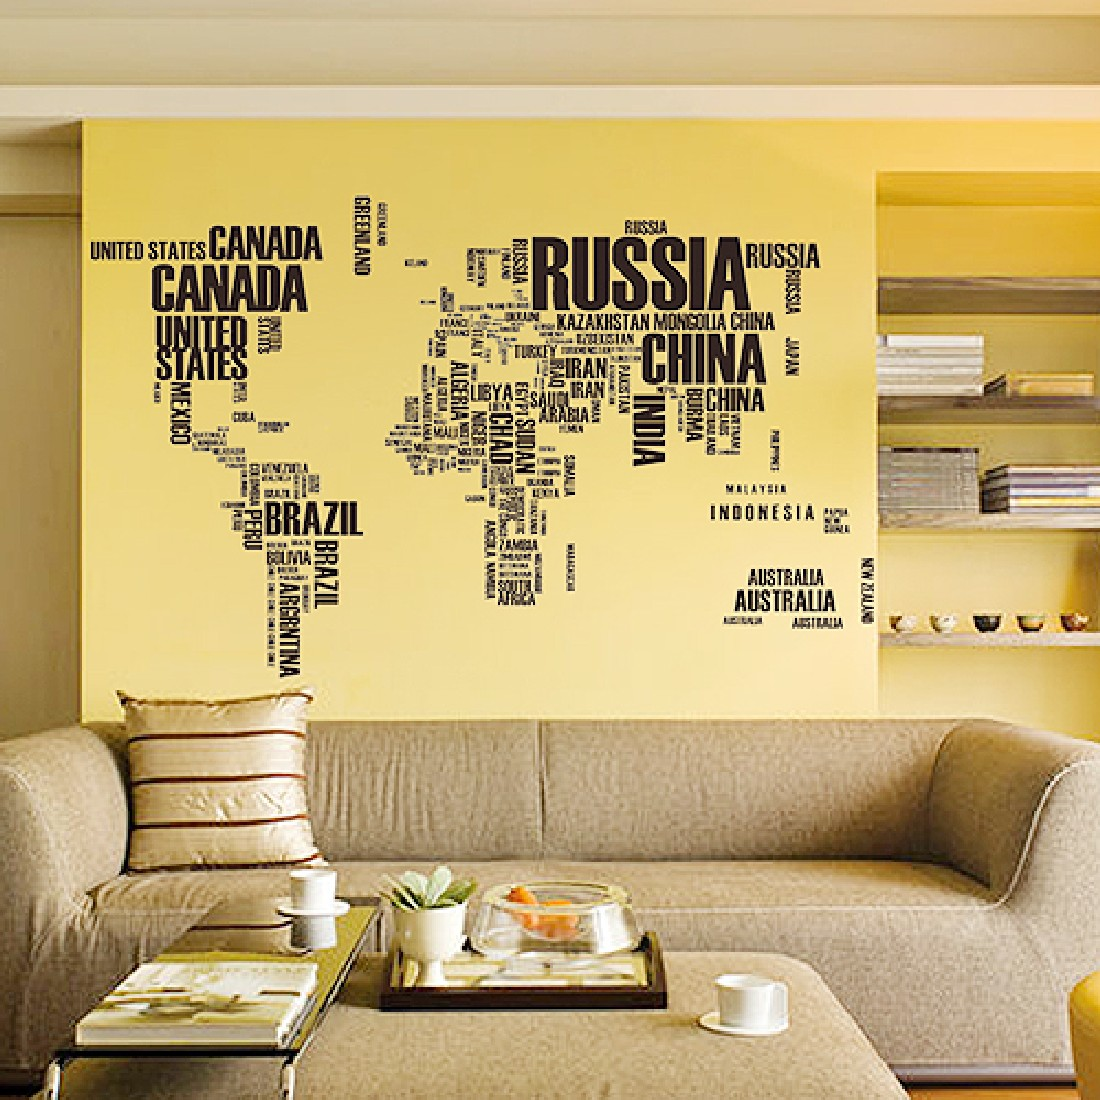 Famous Wall Art Quotes Diy Mold - Wall Art Collections ...